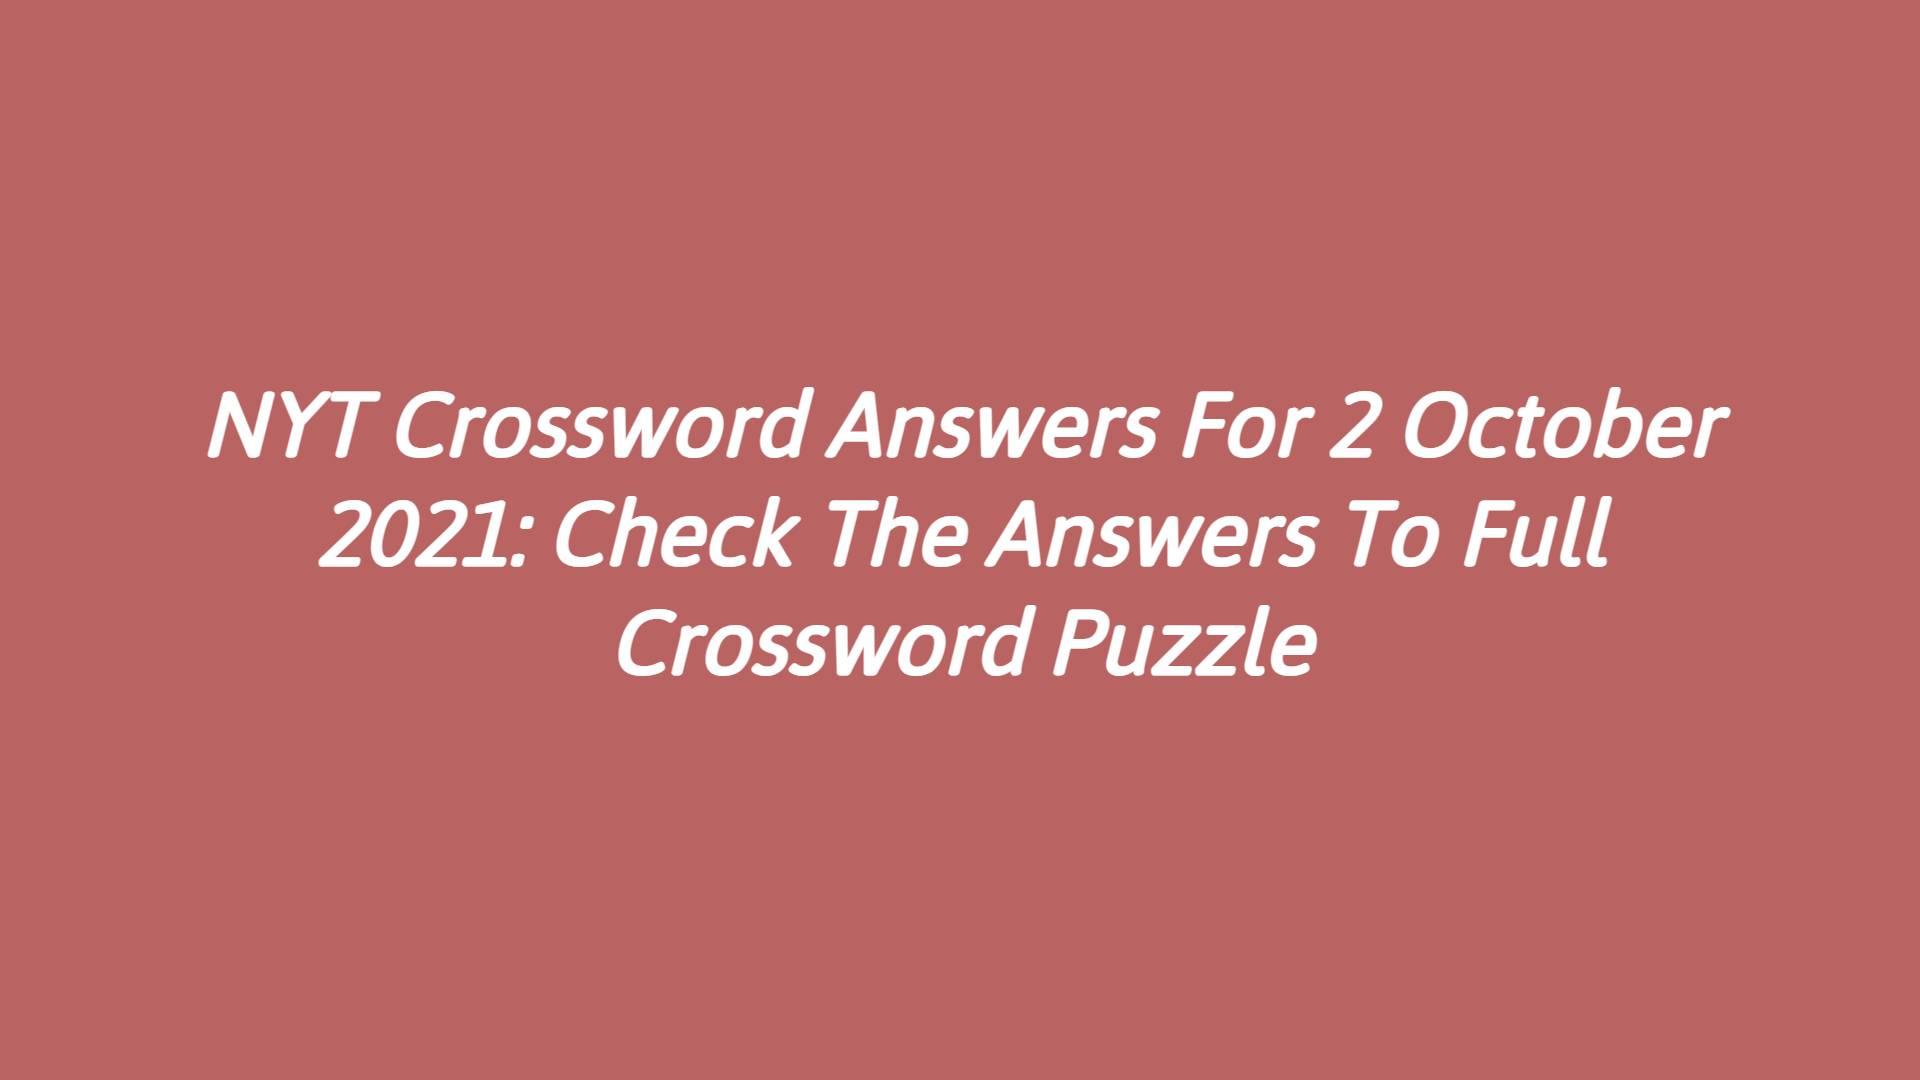 NYT Crossword Answers For 2 October 2021: Check The Answers To Full Crossword Puzzle